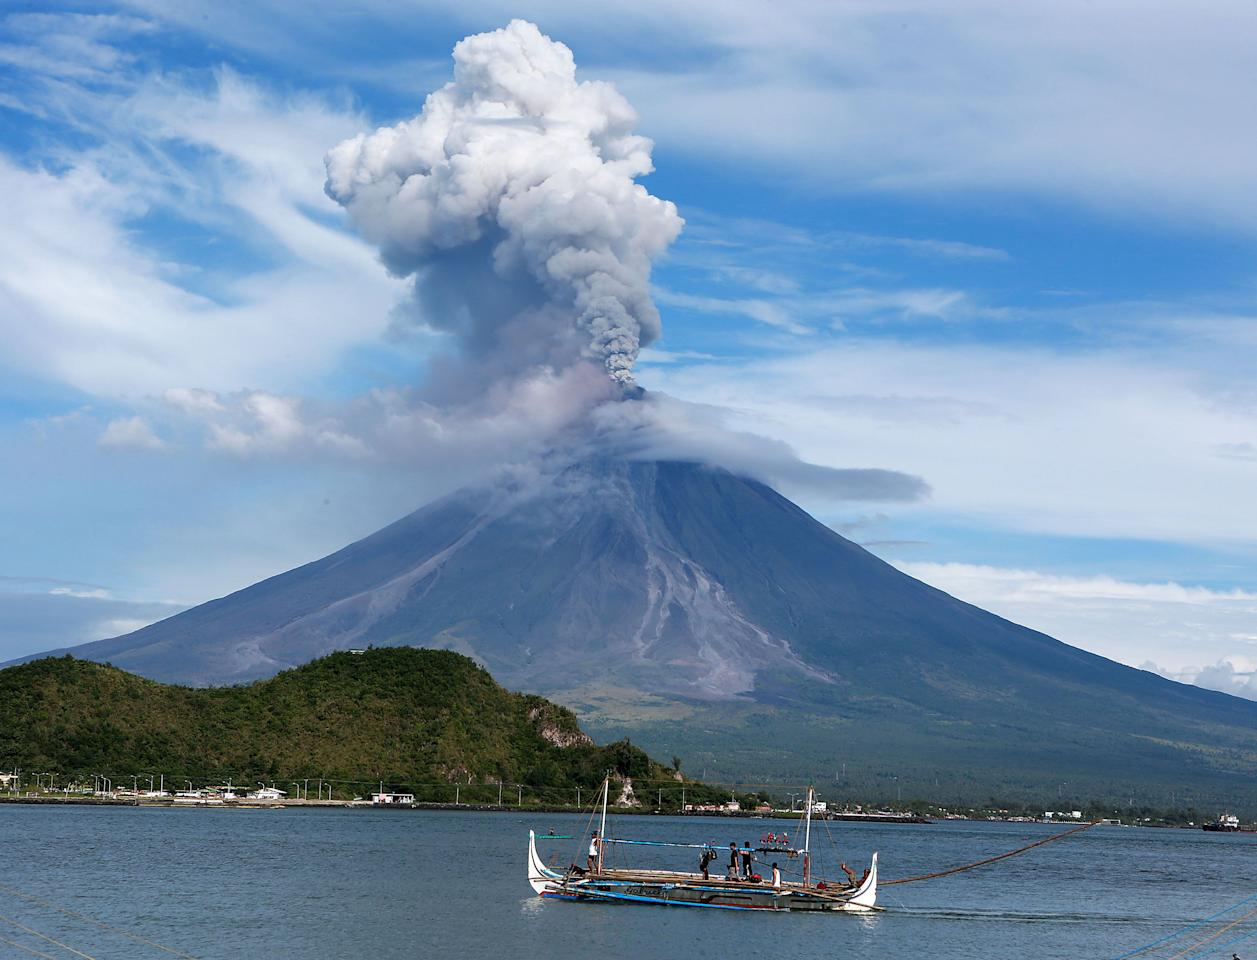 The Most Dangerous Active Volcanoes on Earth